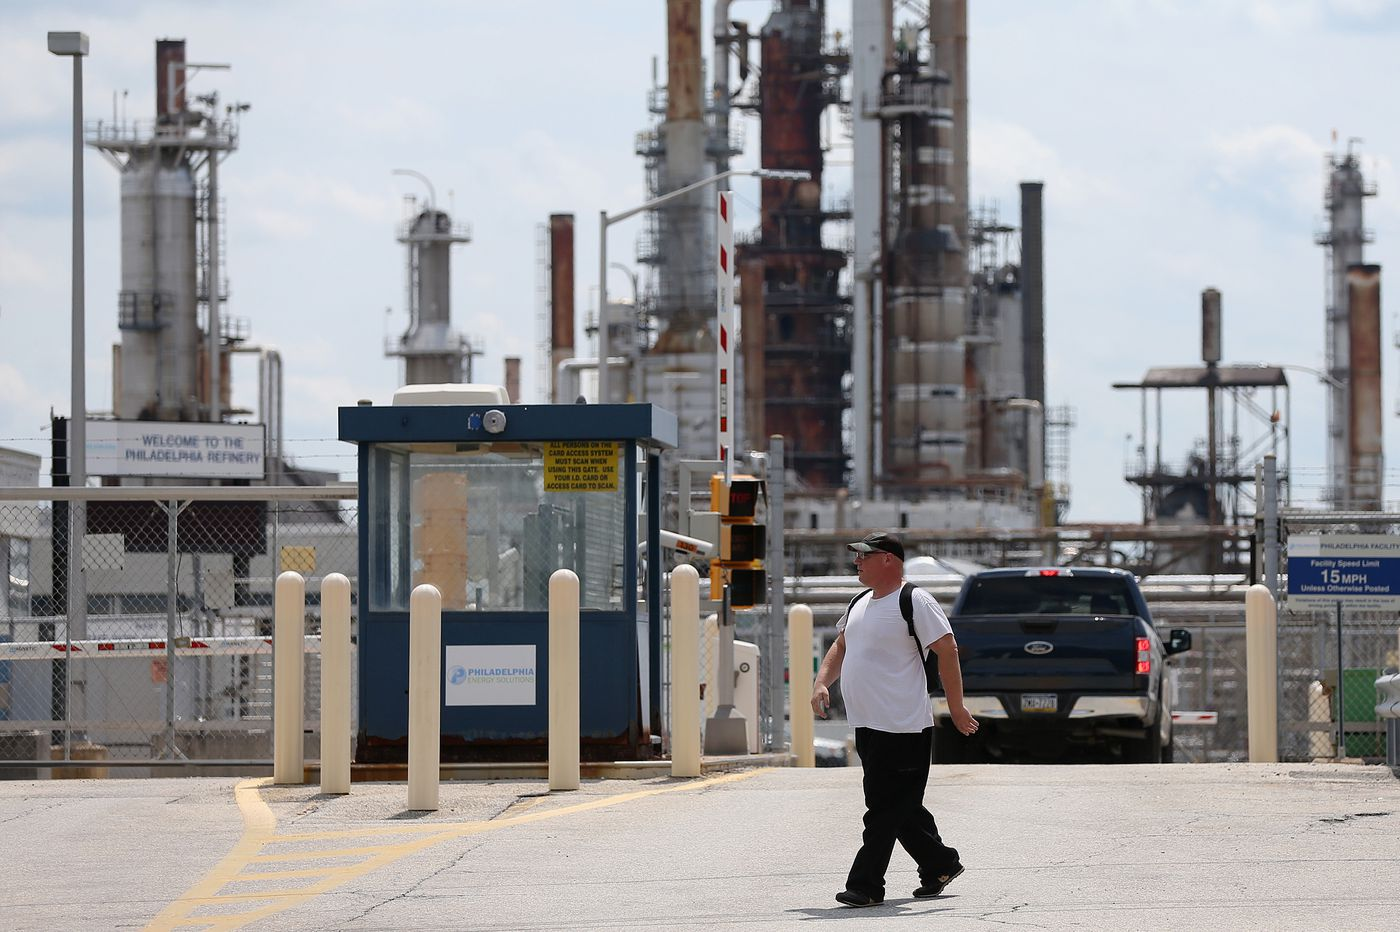 Cleaning up the PES refinery site should happen as soon as possible | Editorial